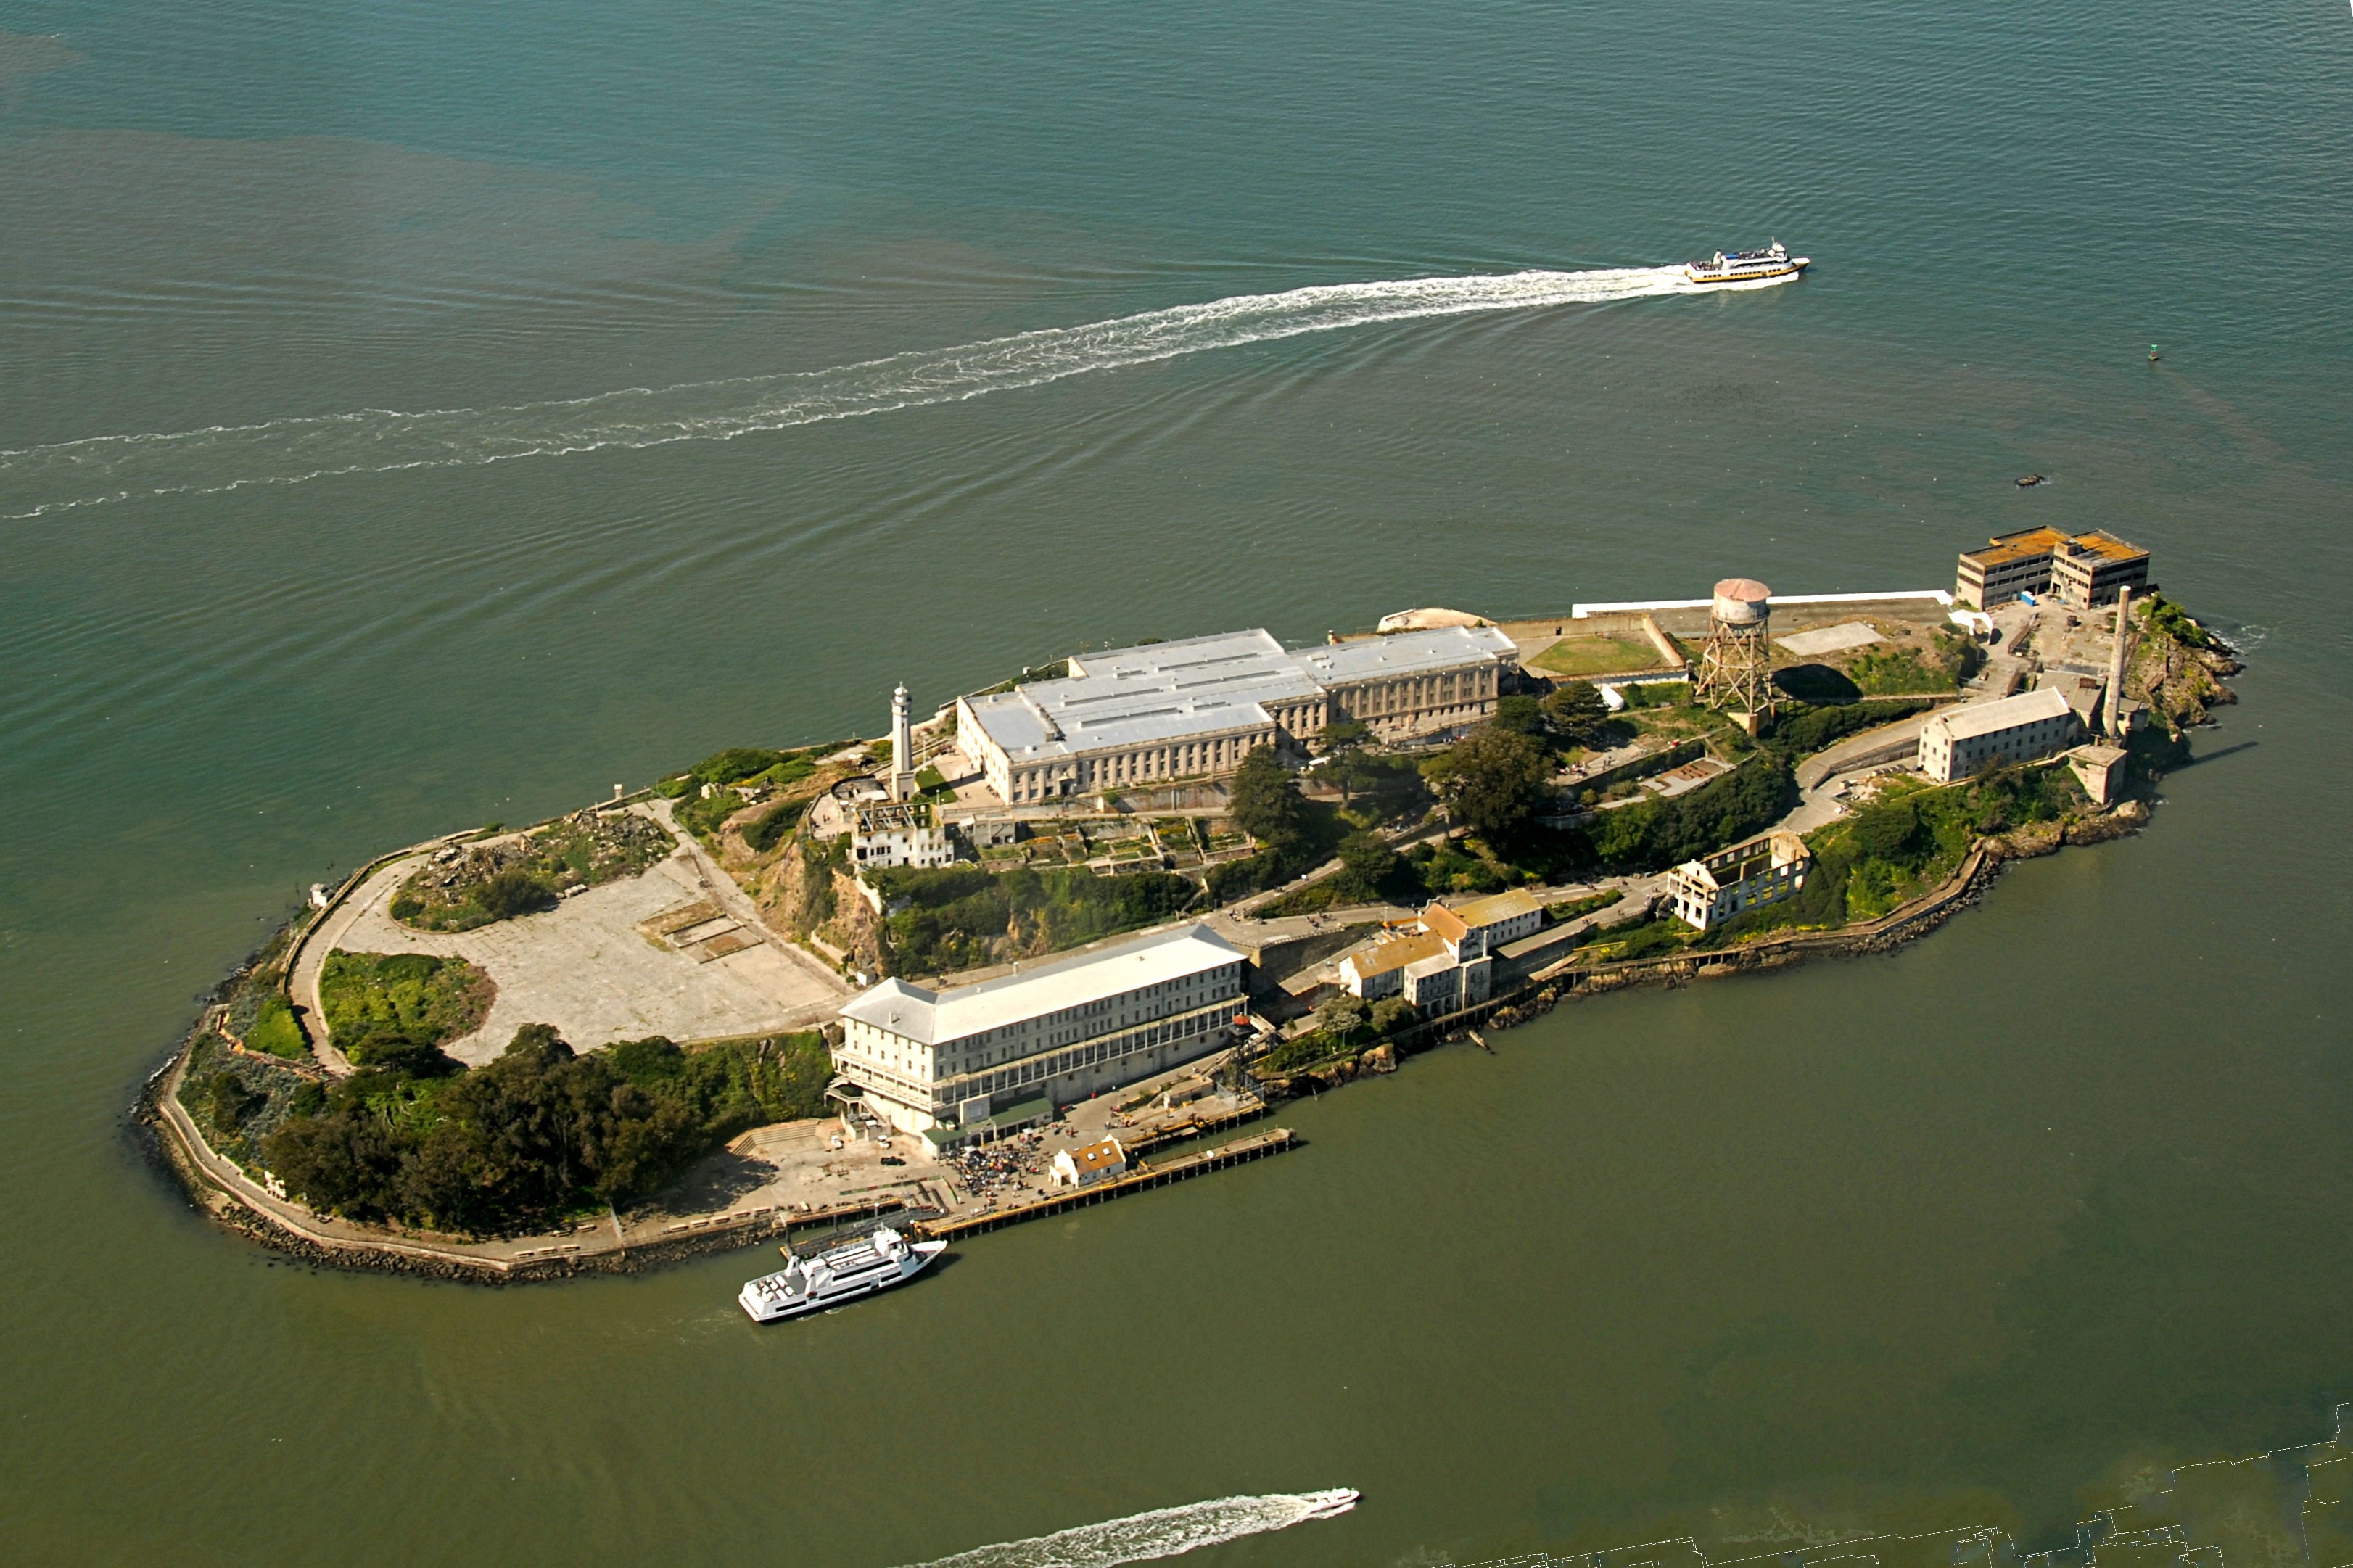 """Alcatraz Island view from the West.   """"Alcatraz Island aerial view"""" by Ralf Baechle, Licensed under CC BY-SA 4.0 via Wikimedia Commons."""